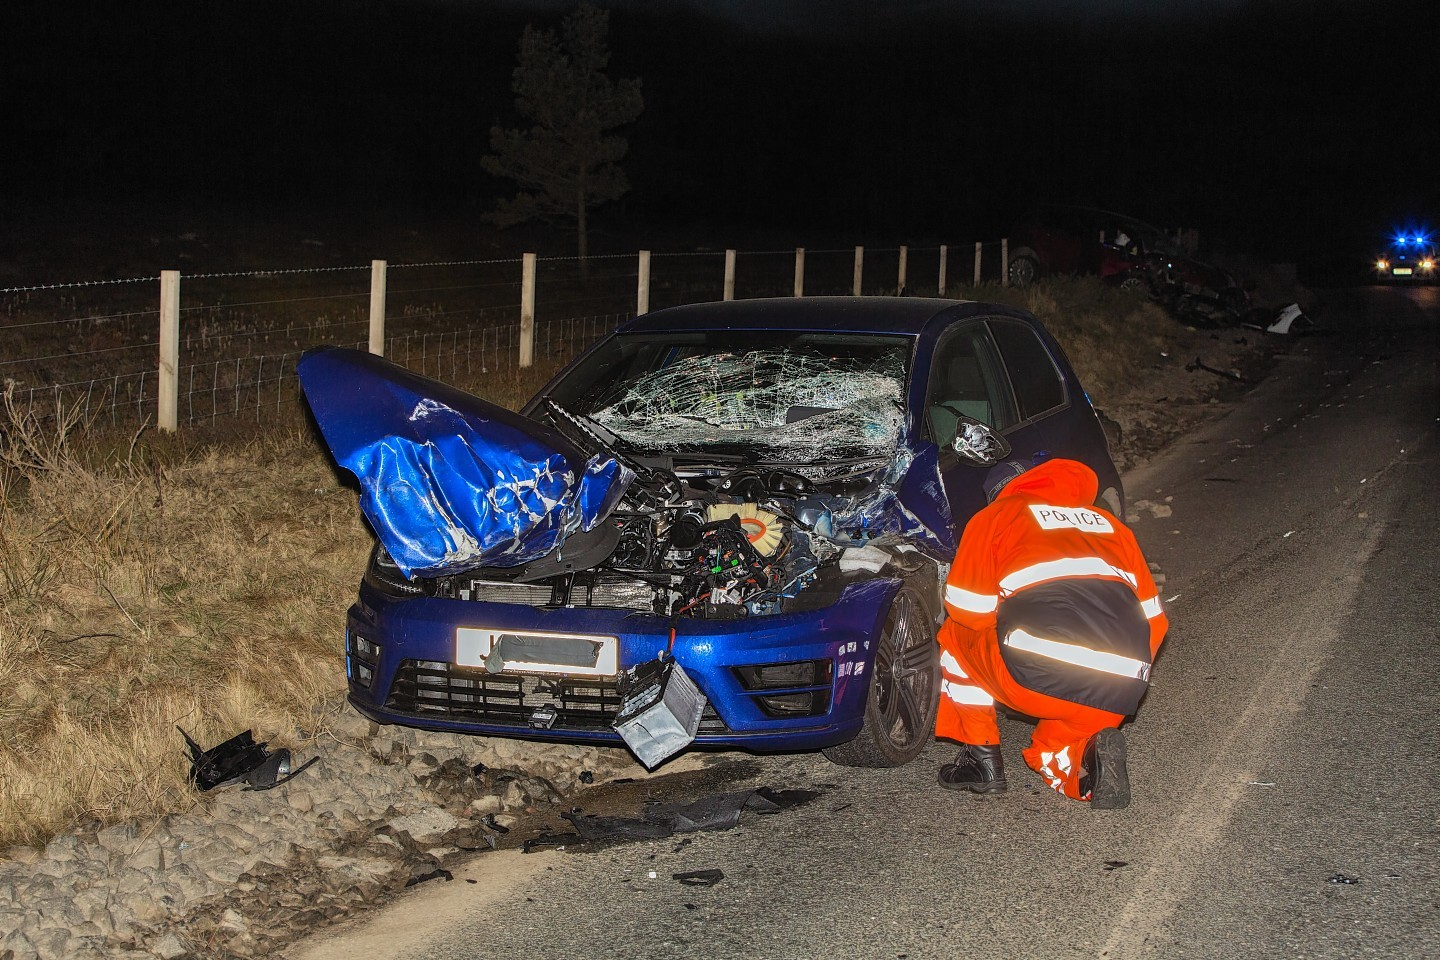 The rate of the most serious crashes is (34%) higher in Moray